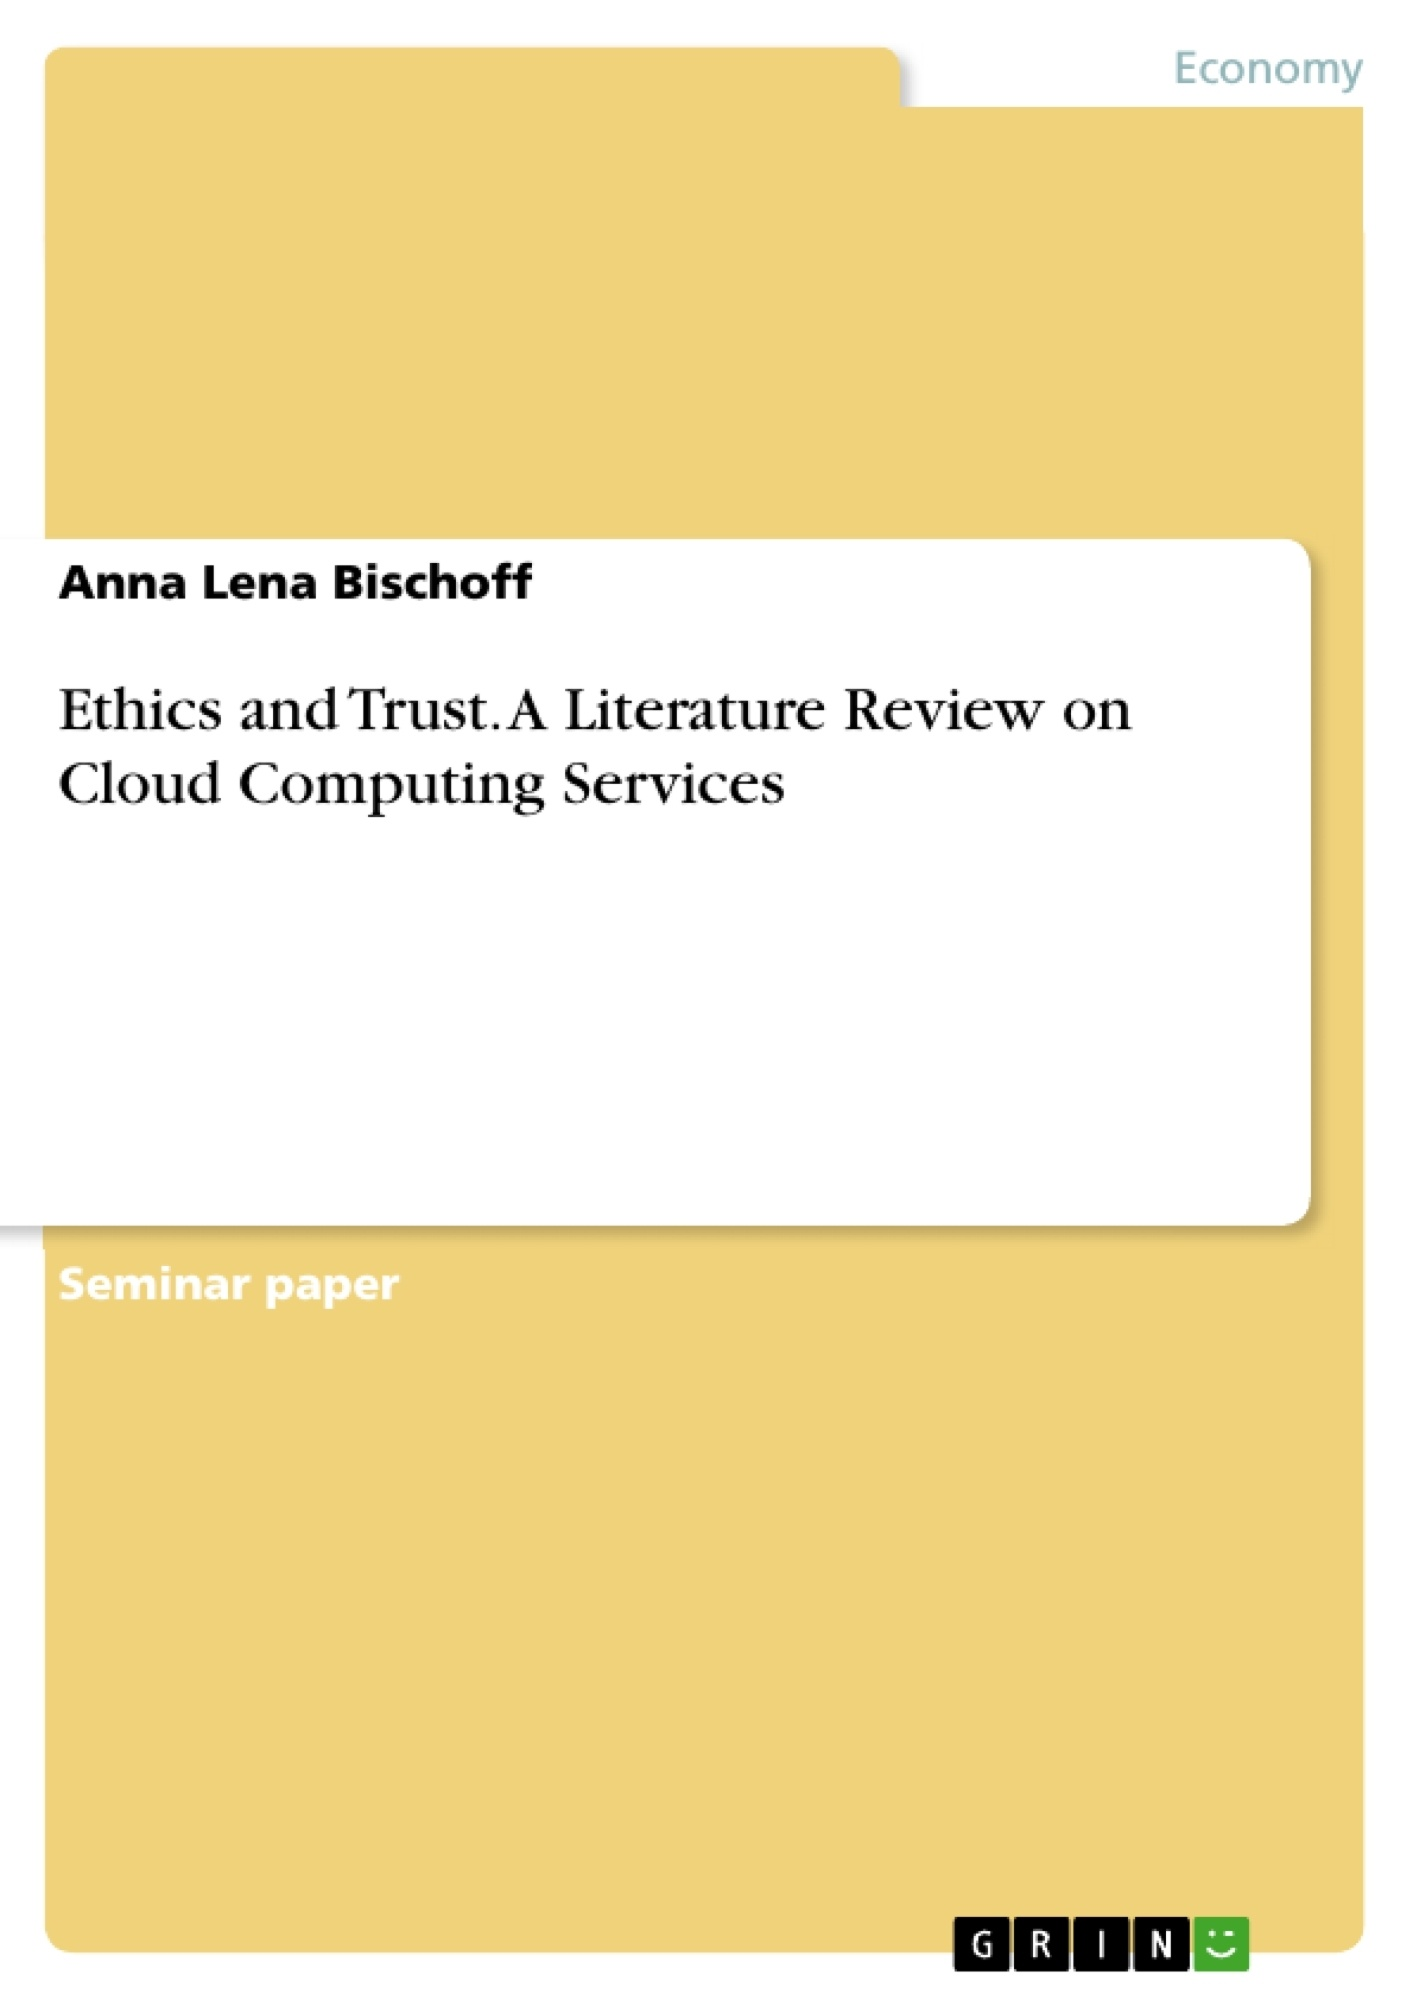 Title: Ethics and Trust. A Literature Review on Cloud Computing Services